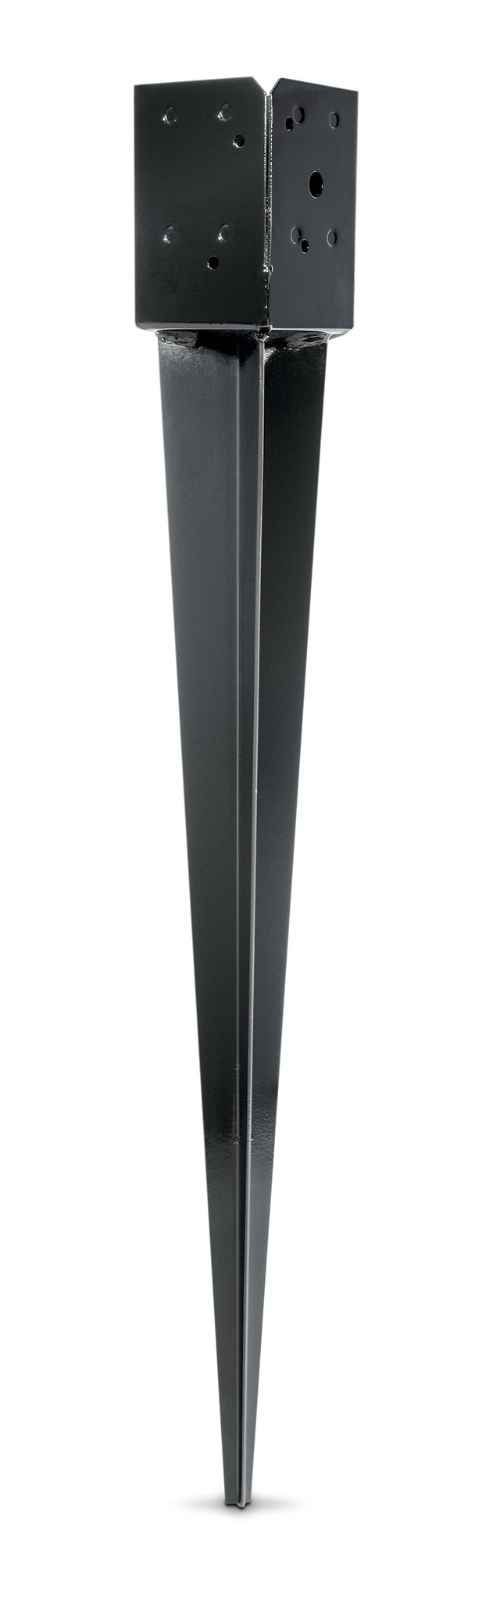 E-Z Spike,™ FOR INSTALLING FENCE POSTS FAST, WITHOUT ...